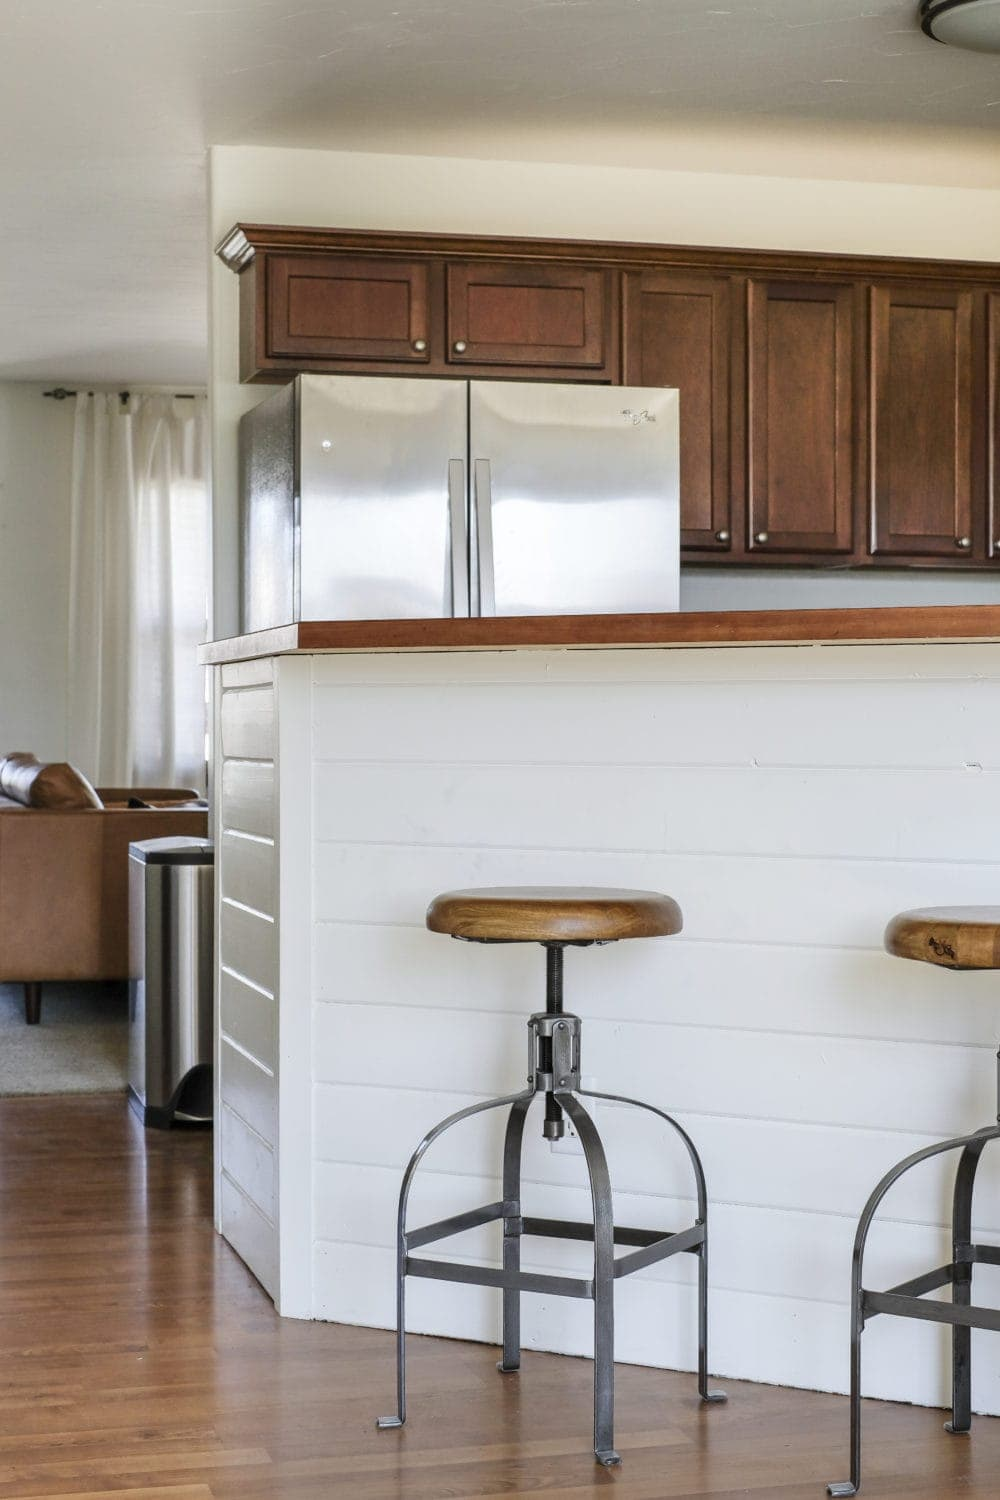 Budget kitchen breakfast bar with with DIY shiplap and rustic barstools